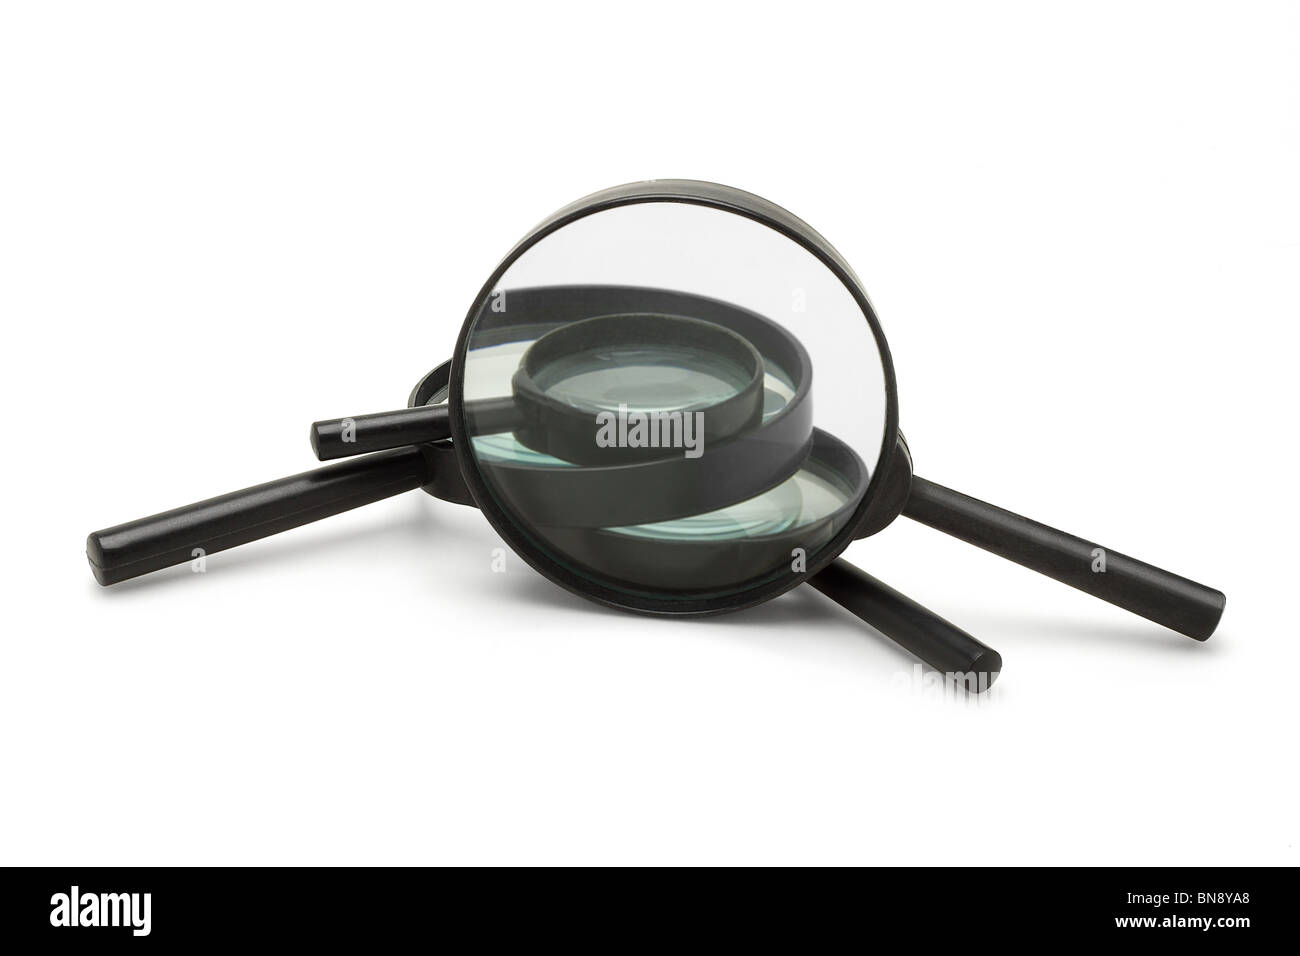 Magnifying glasses of various sizes on white background - Stock Image